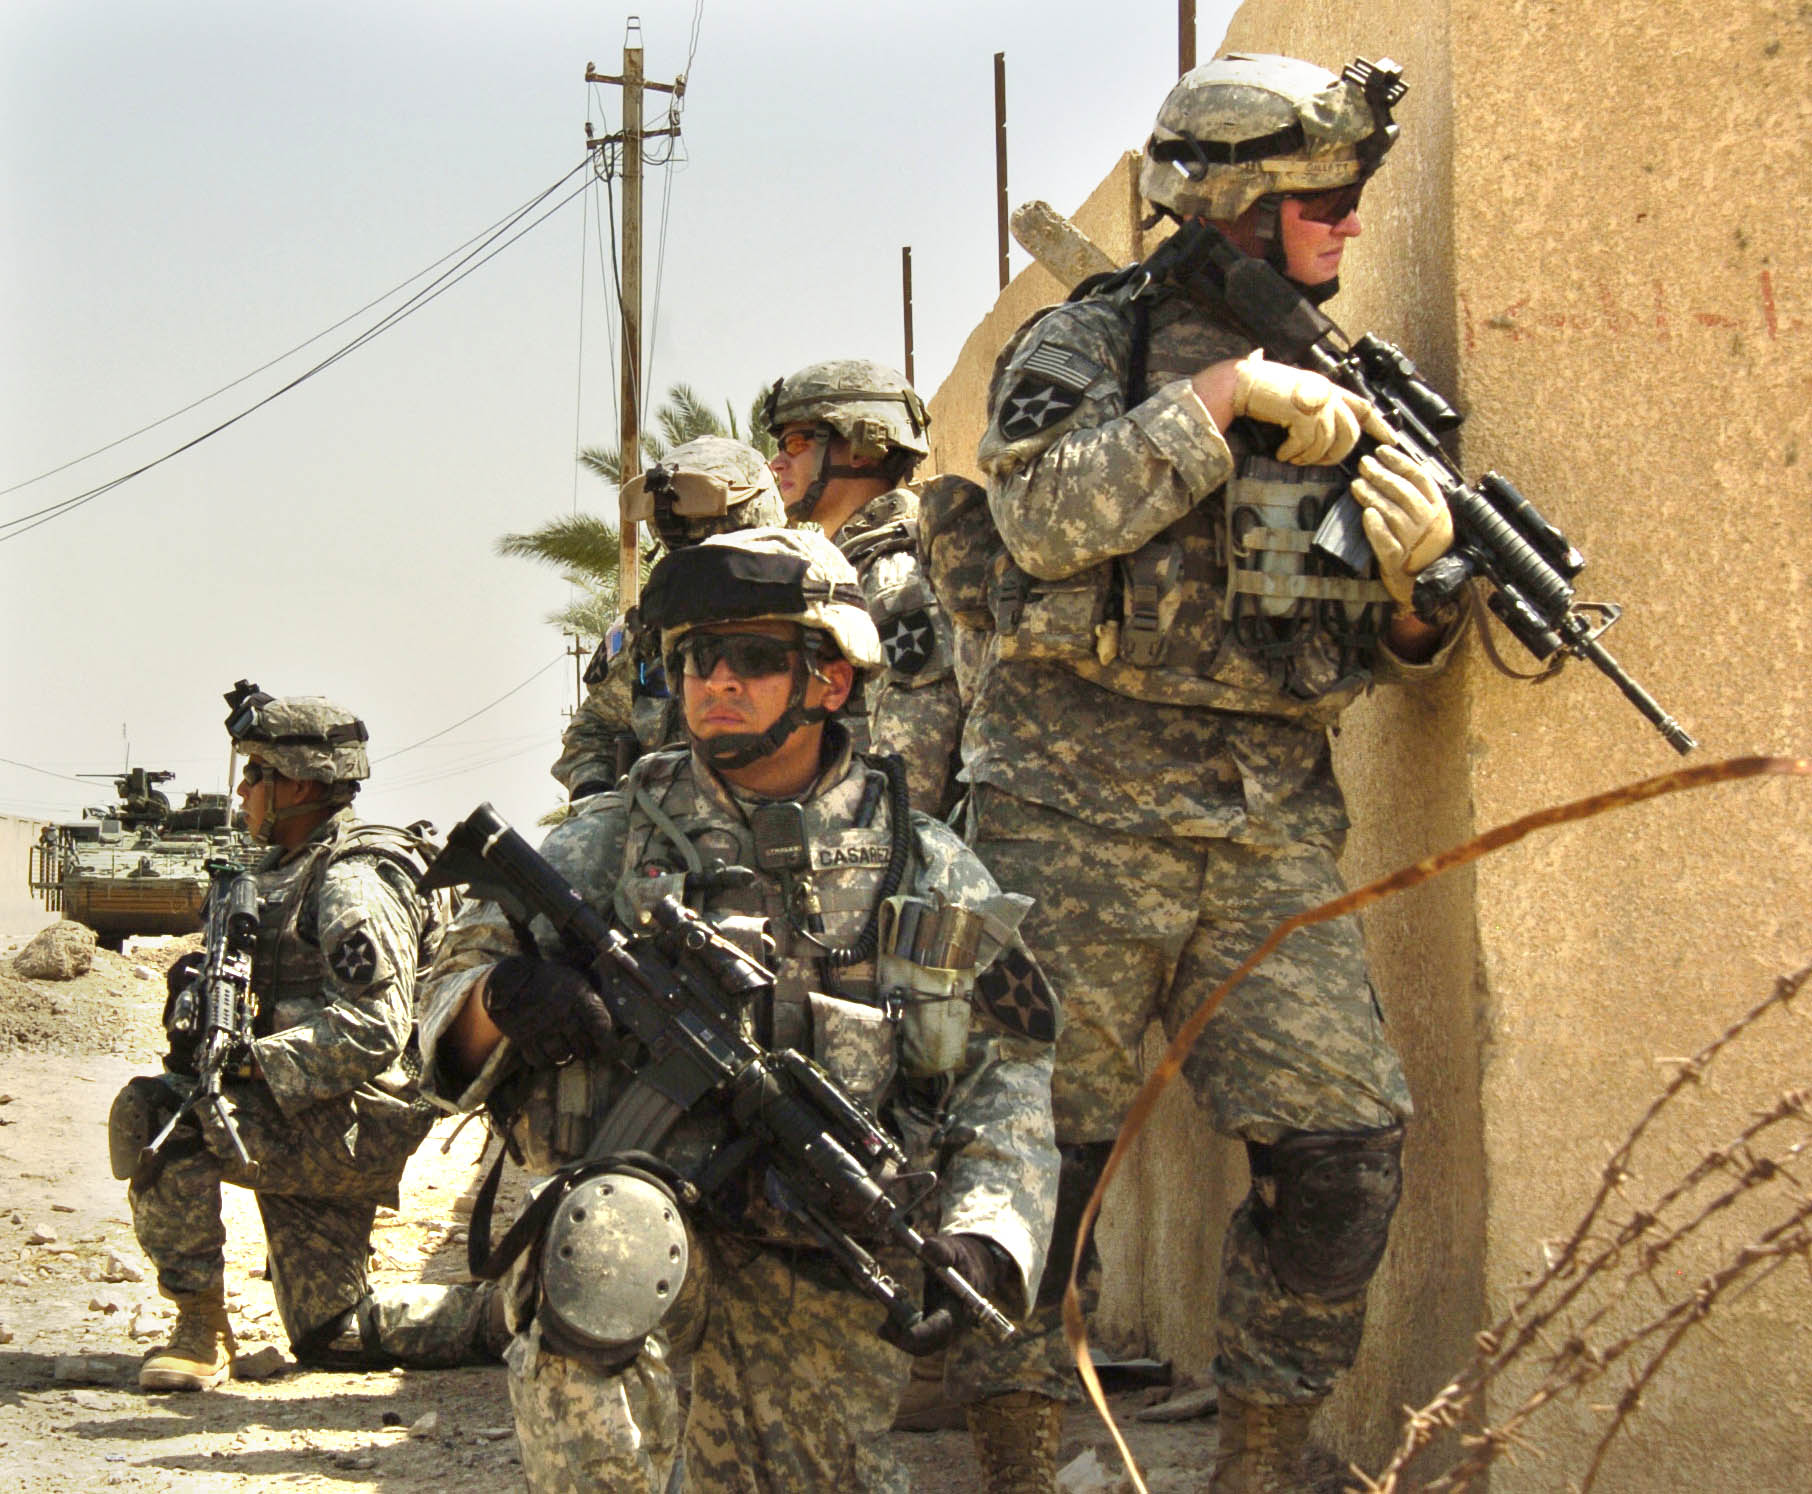 U.S. Army soldiers from the 2nd Infantry Division, patrol the streets of Baghdad, Iraq during the Iraq War in August 2006, while wearing the Army Combat Uniform and Interceptor body armor.